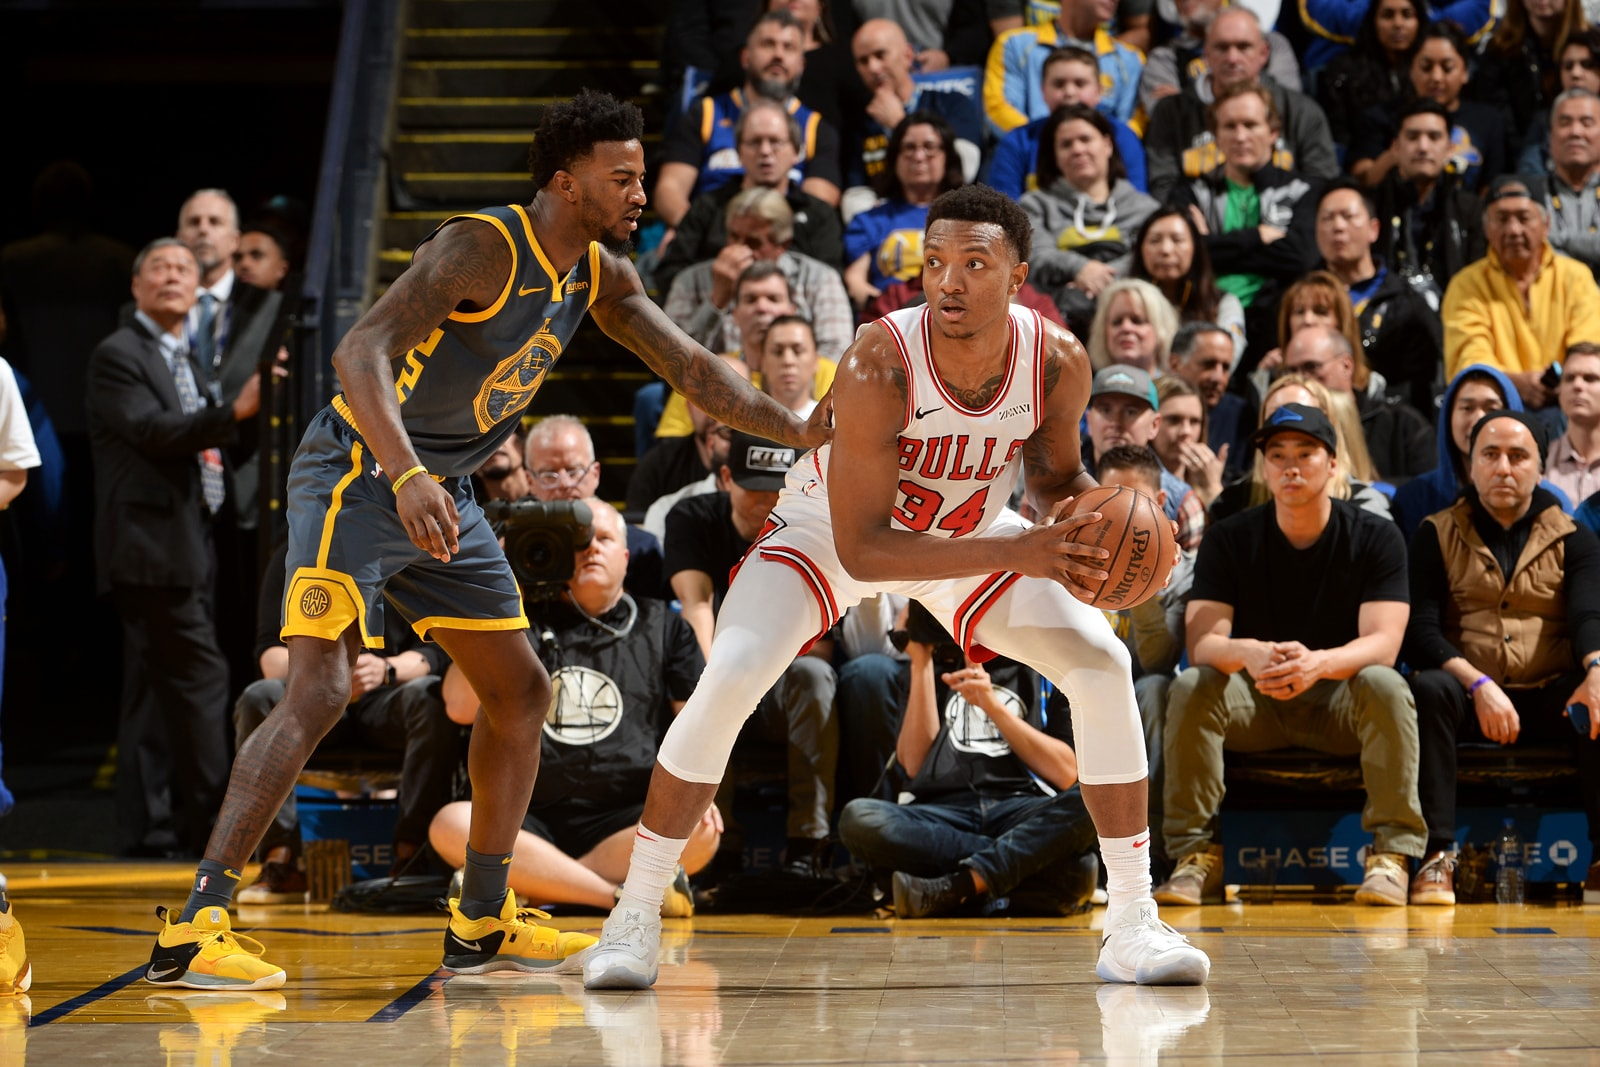 Wendell Carter Jr. #34 of the Chicago Bulls handles the ball against the Golden State Warriors on January 11, 2019 at ORACLE Arena in Oakland, California.